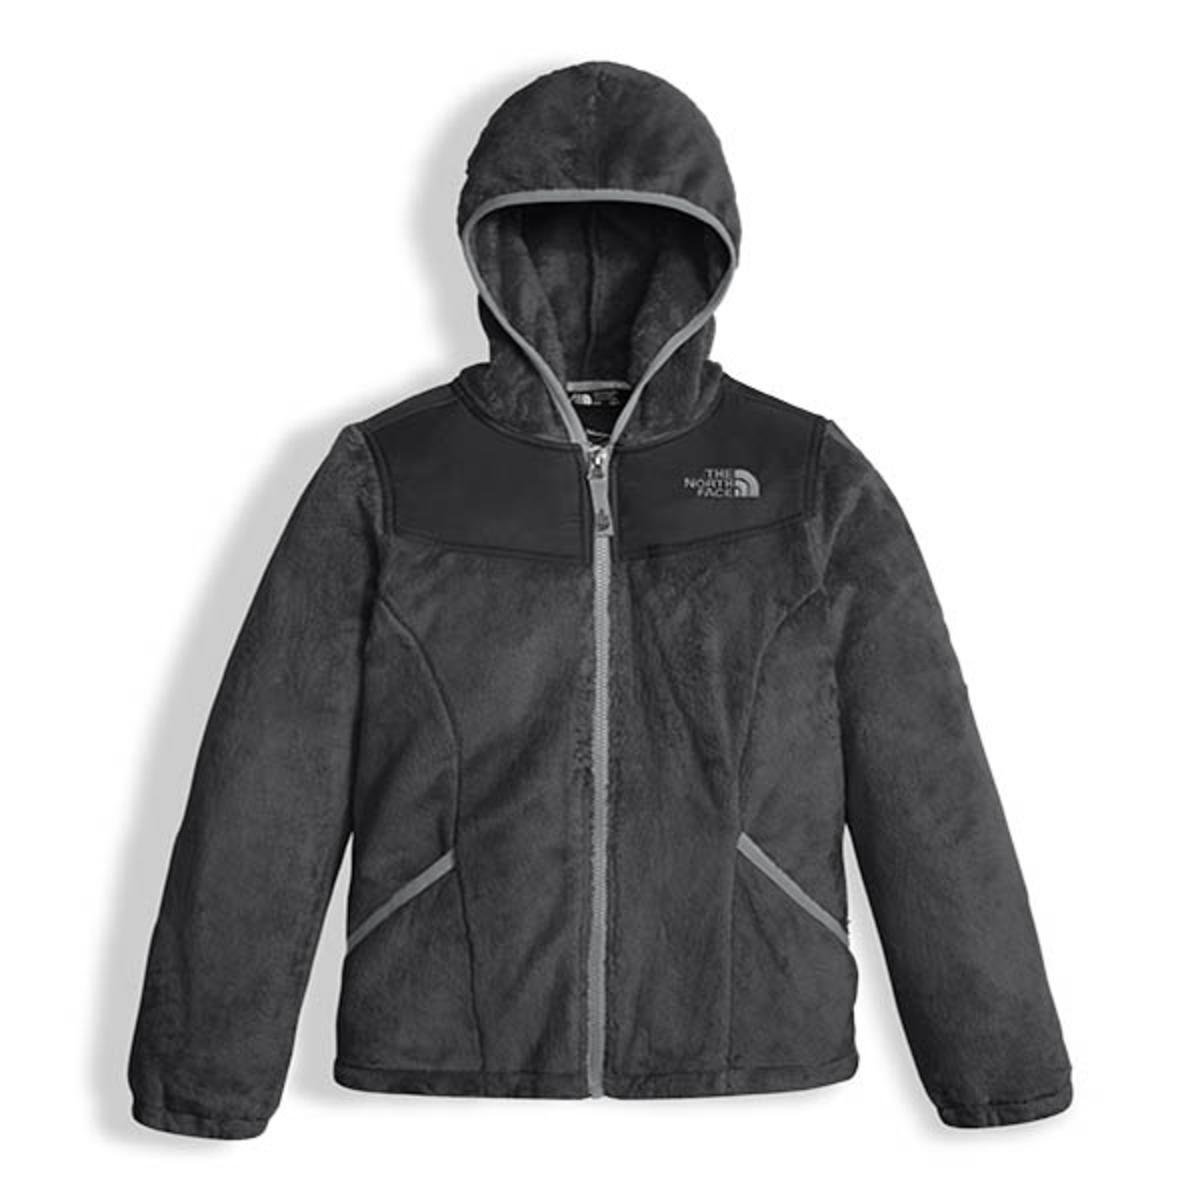 The North Face KidsレディースOso Hoodie ( Little Kids / Big Kids ) B01LWA62RT X-Small|メタリックシルバー メタリックシルバー X-Small